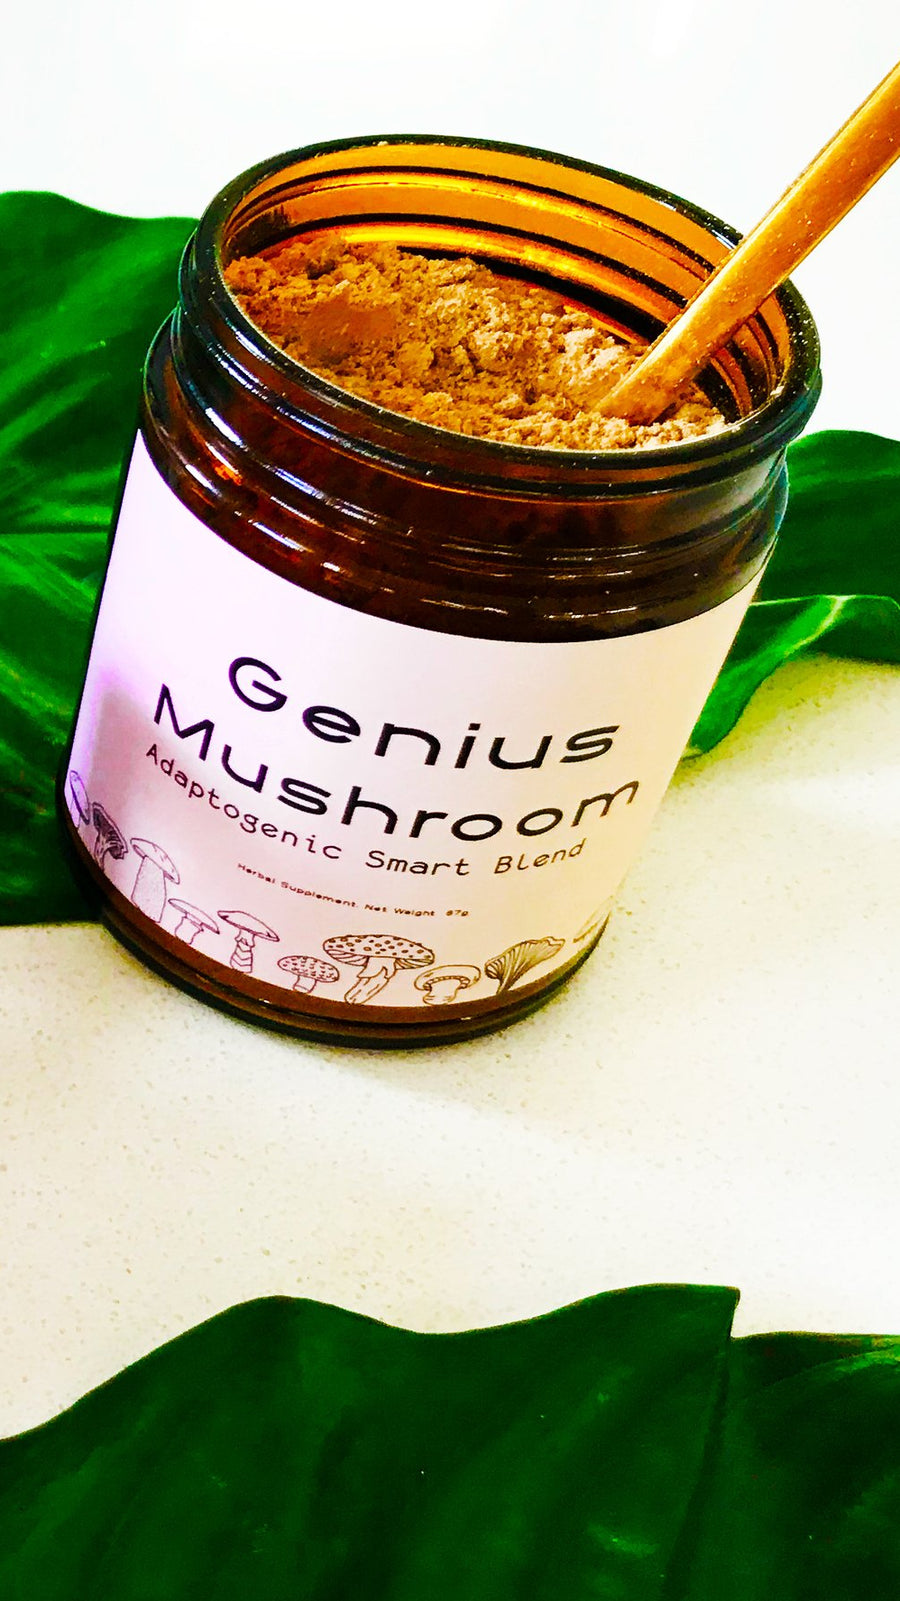 Genius Mushroom Adaptogenic Smart Blend by Pretty Mushroom Wellness